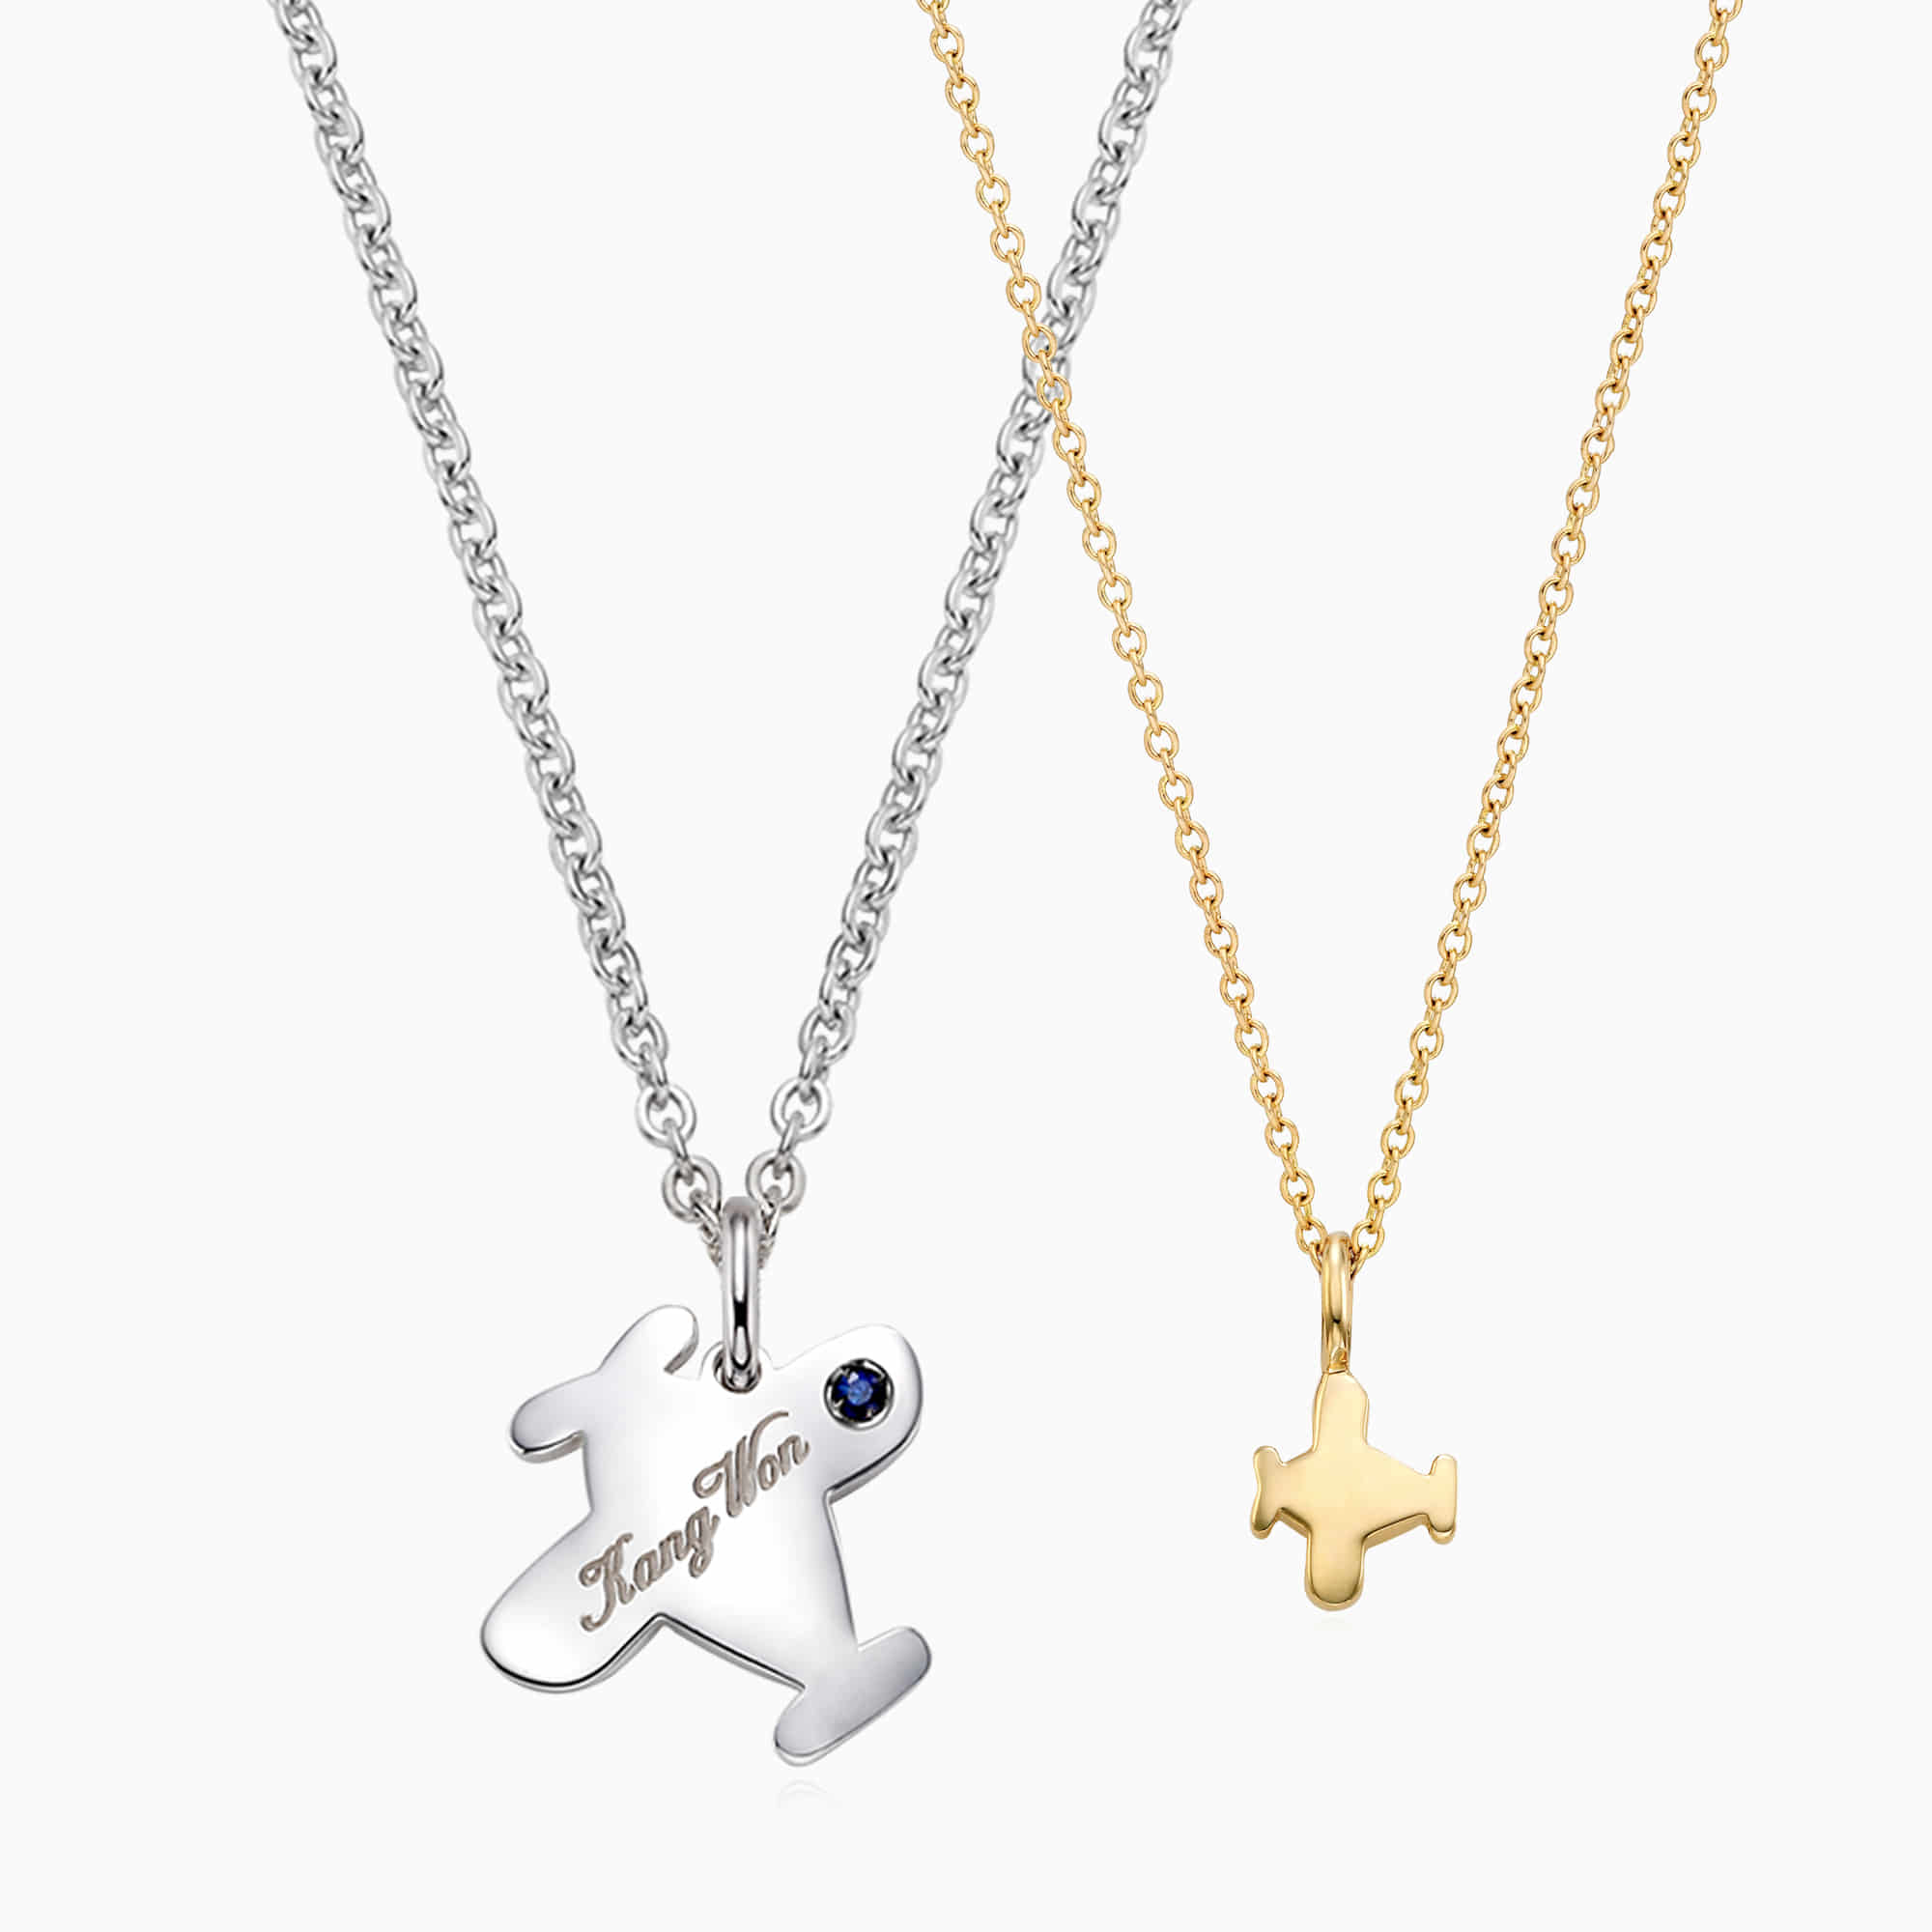 [With My Child] Silver/14K/18K B339 Airplane Necklace